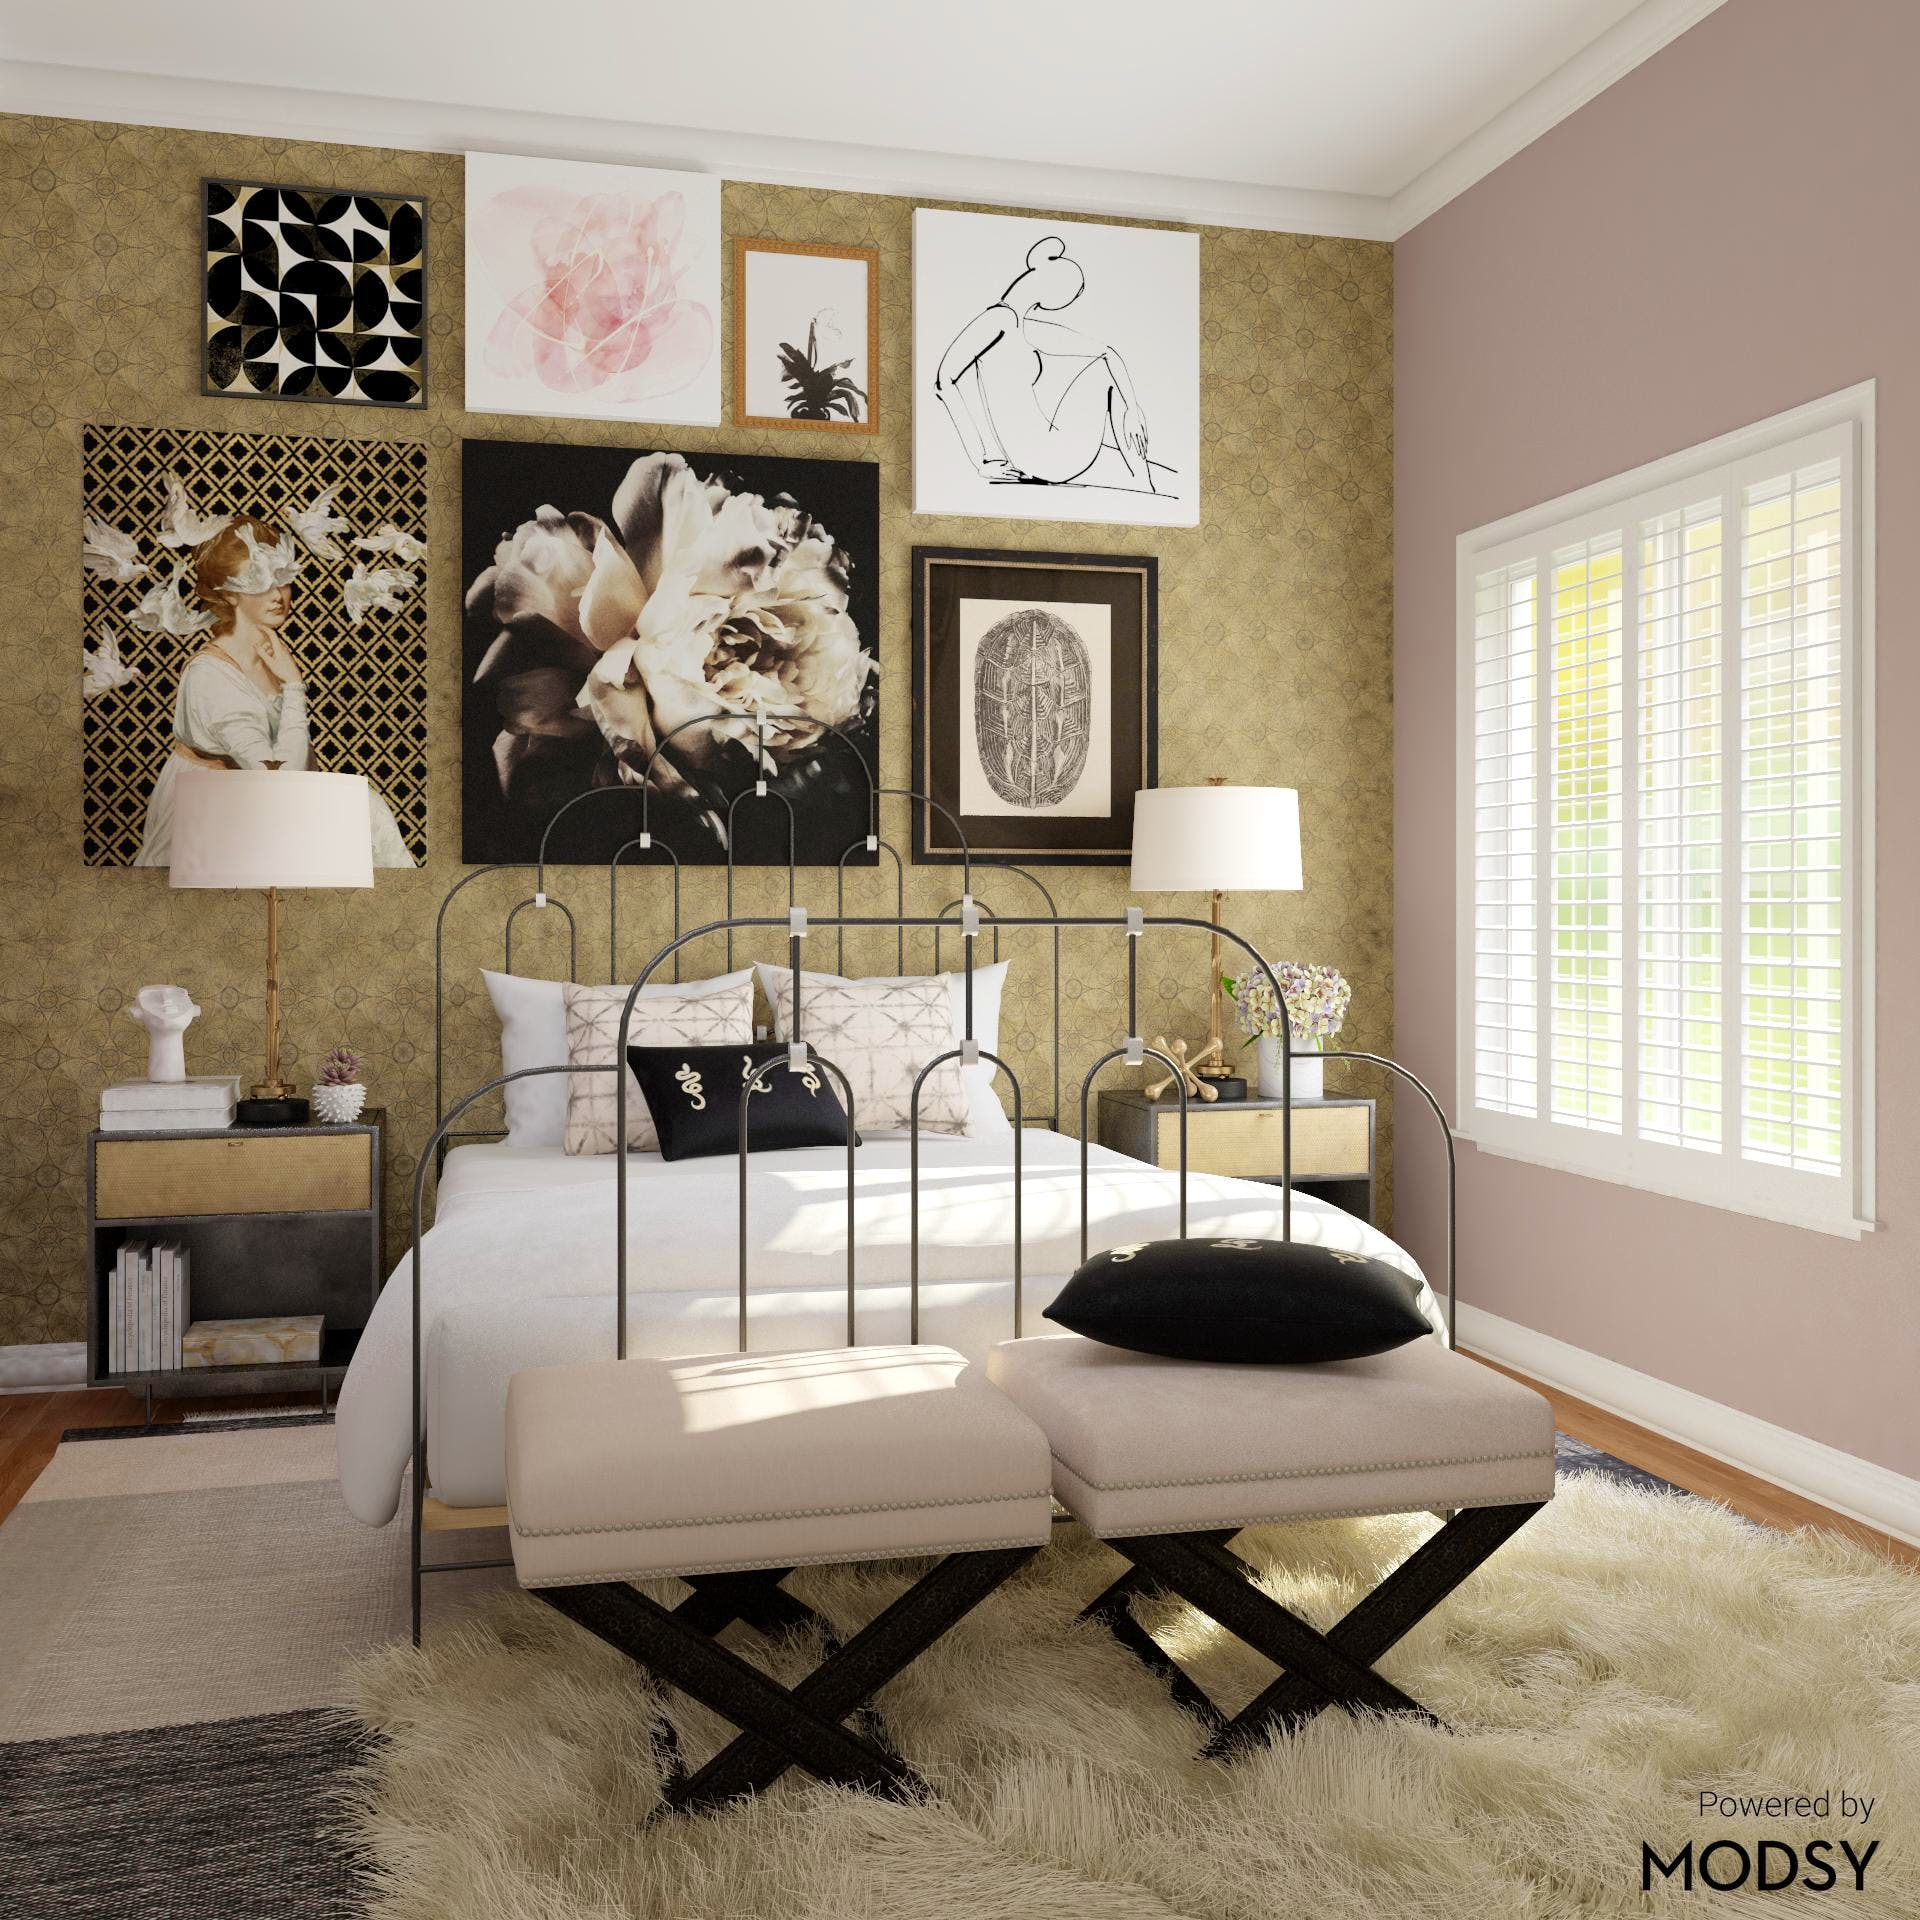 Wallpaper Dreams: Eclectic Master Bedroom